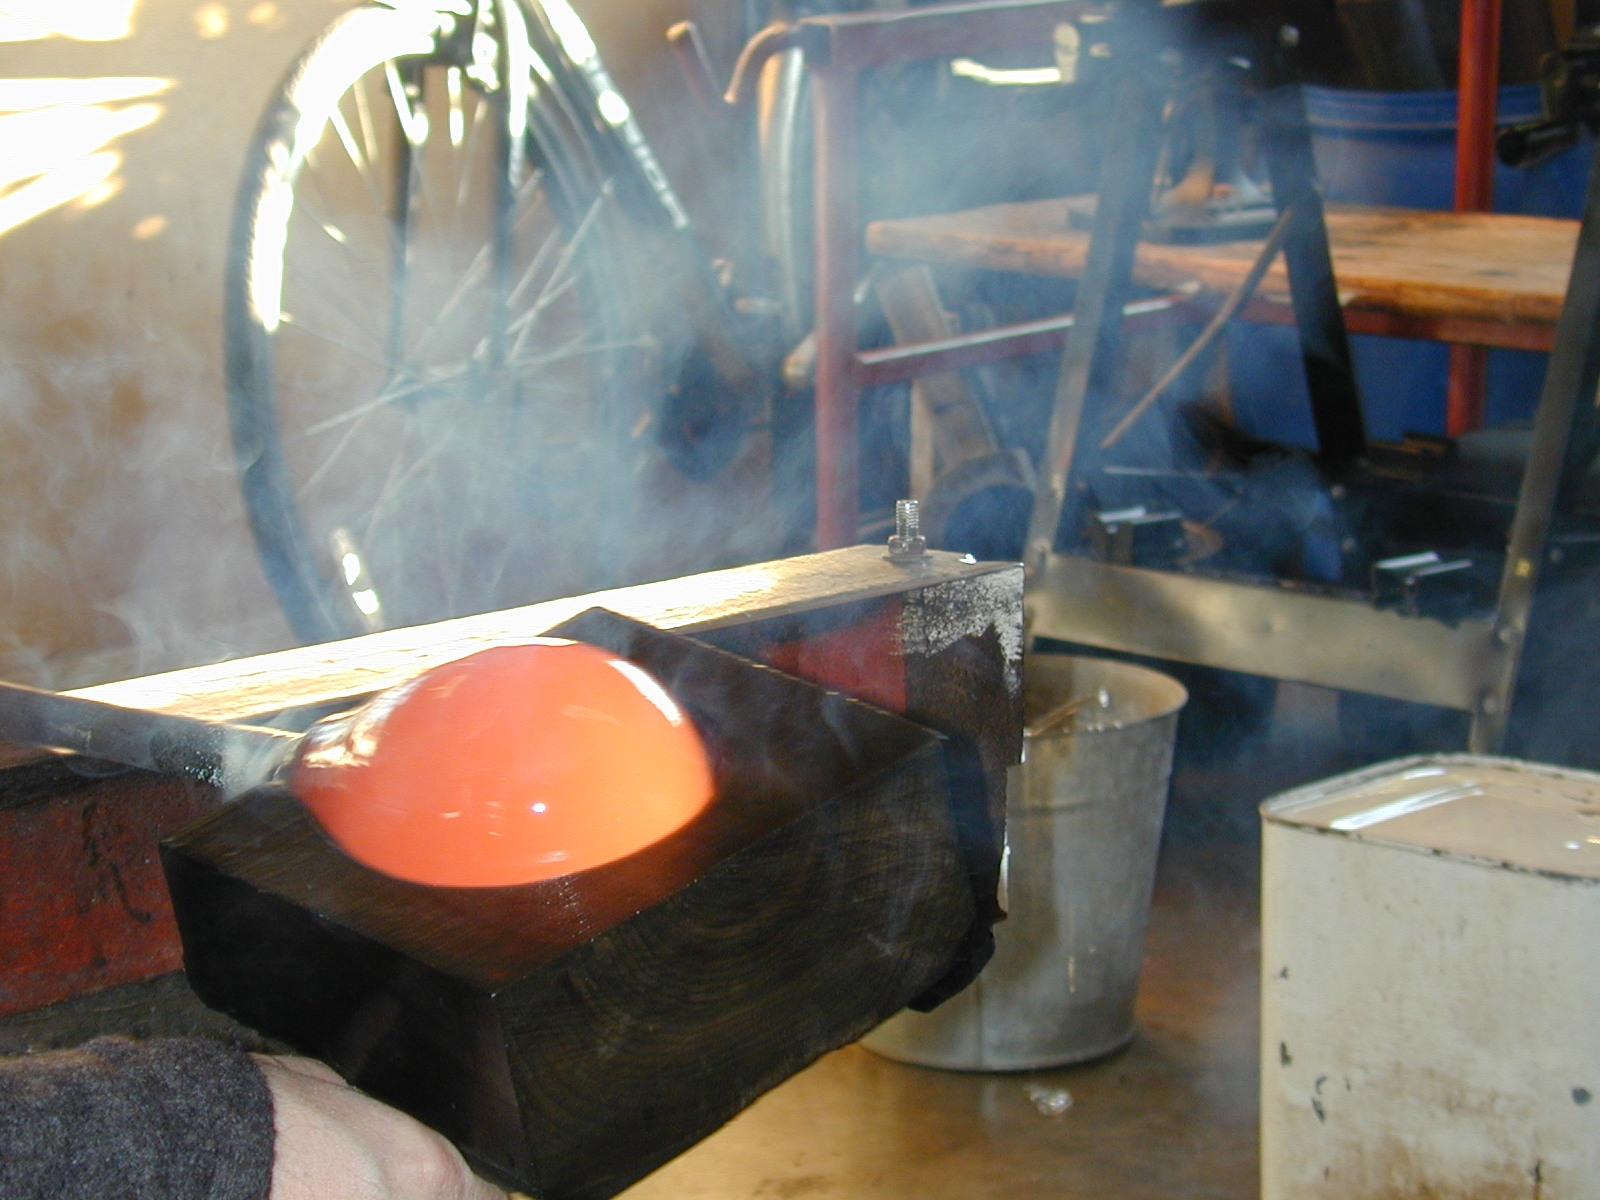 Shaping hot glass with a wooden block